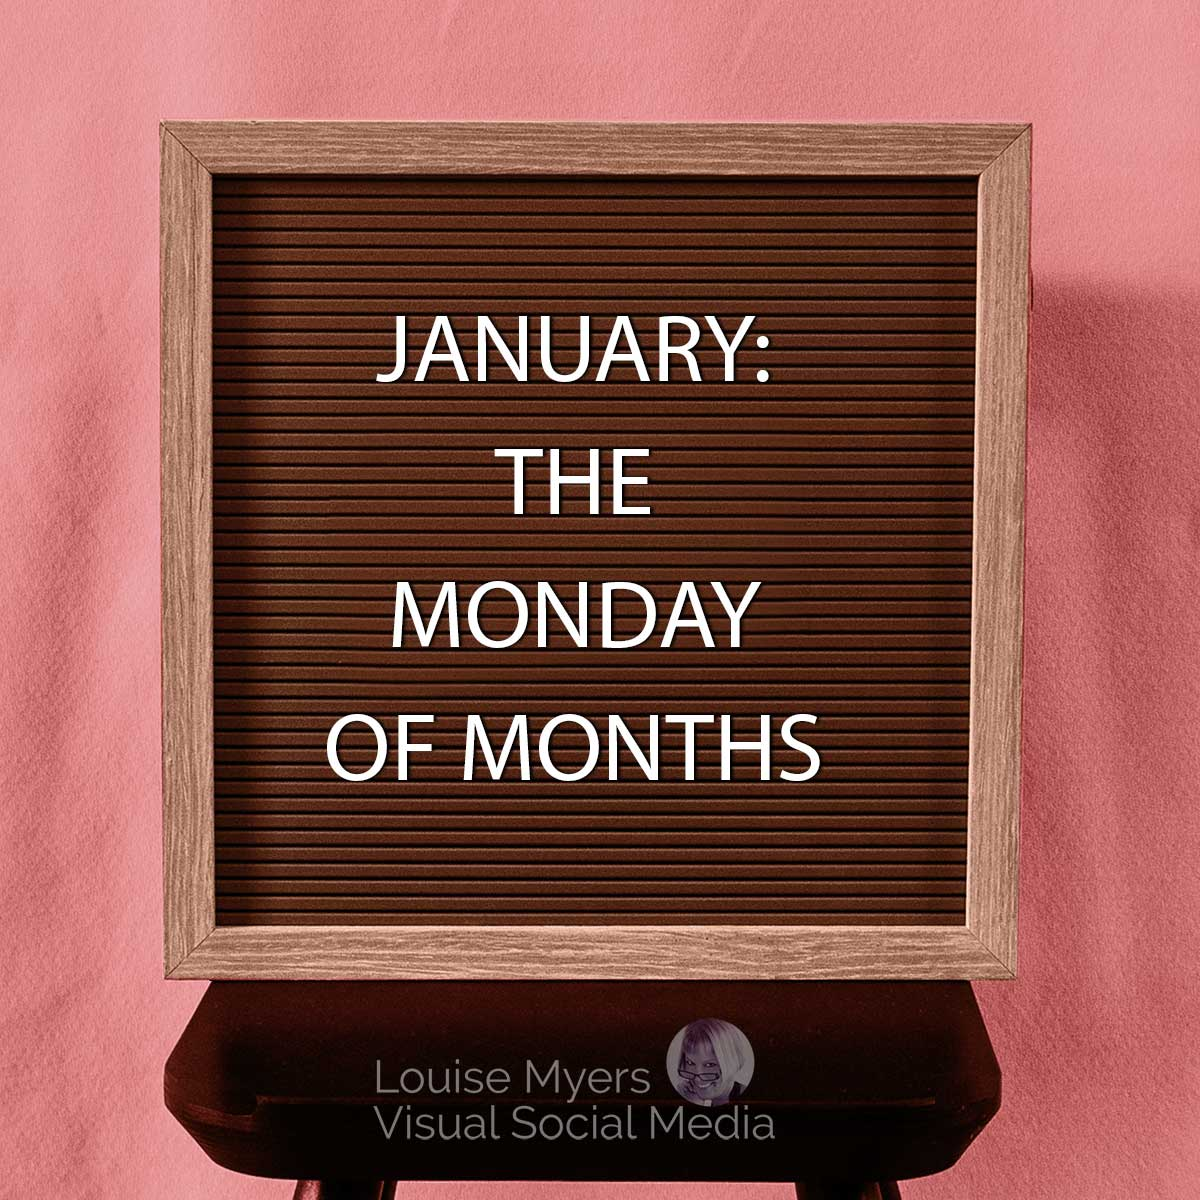 January is the Monday of months quote on letter board.